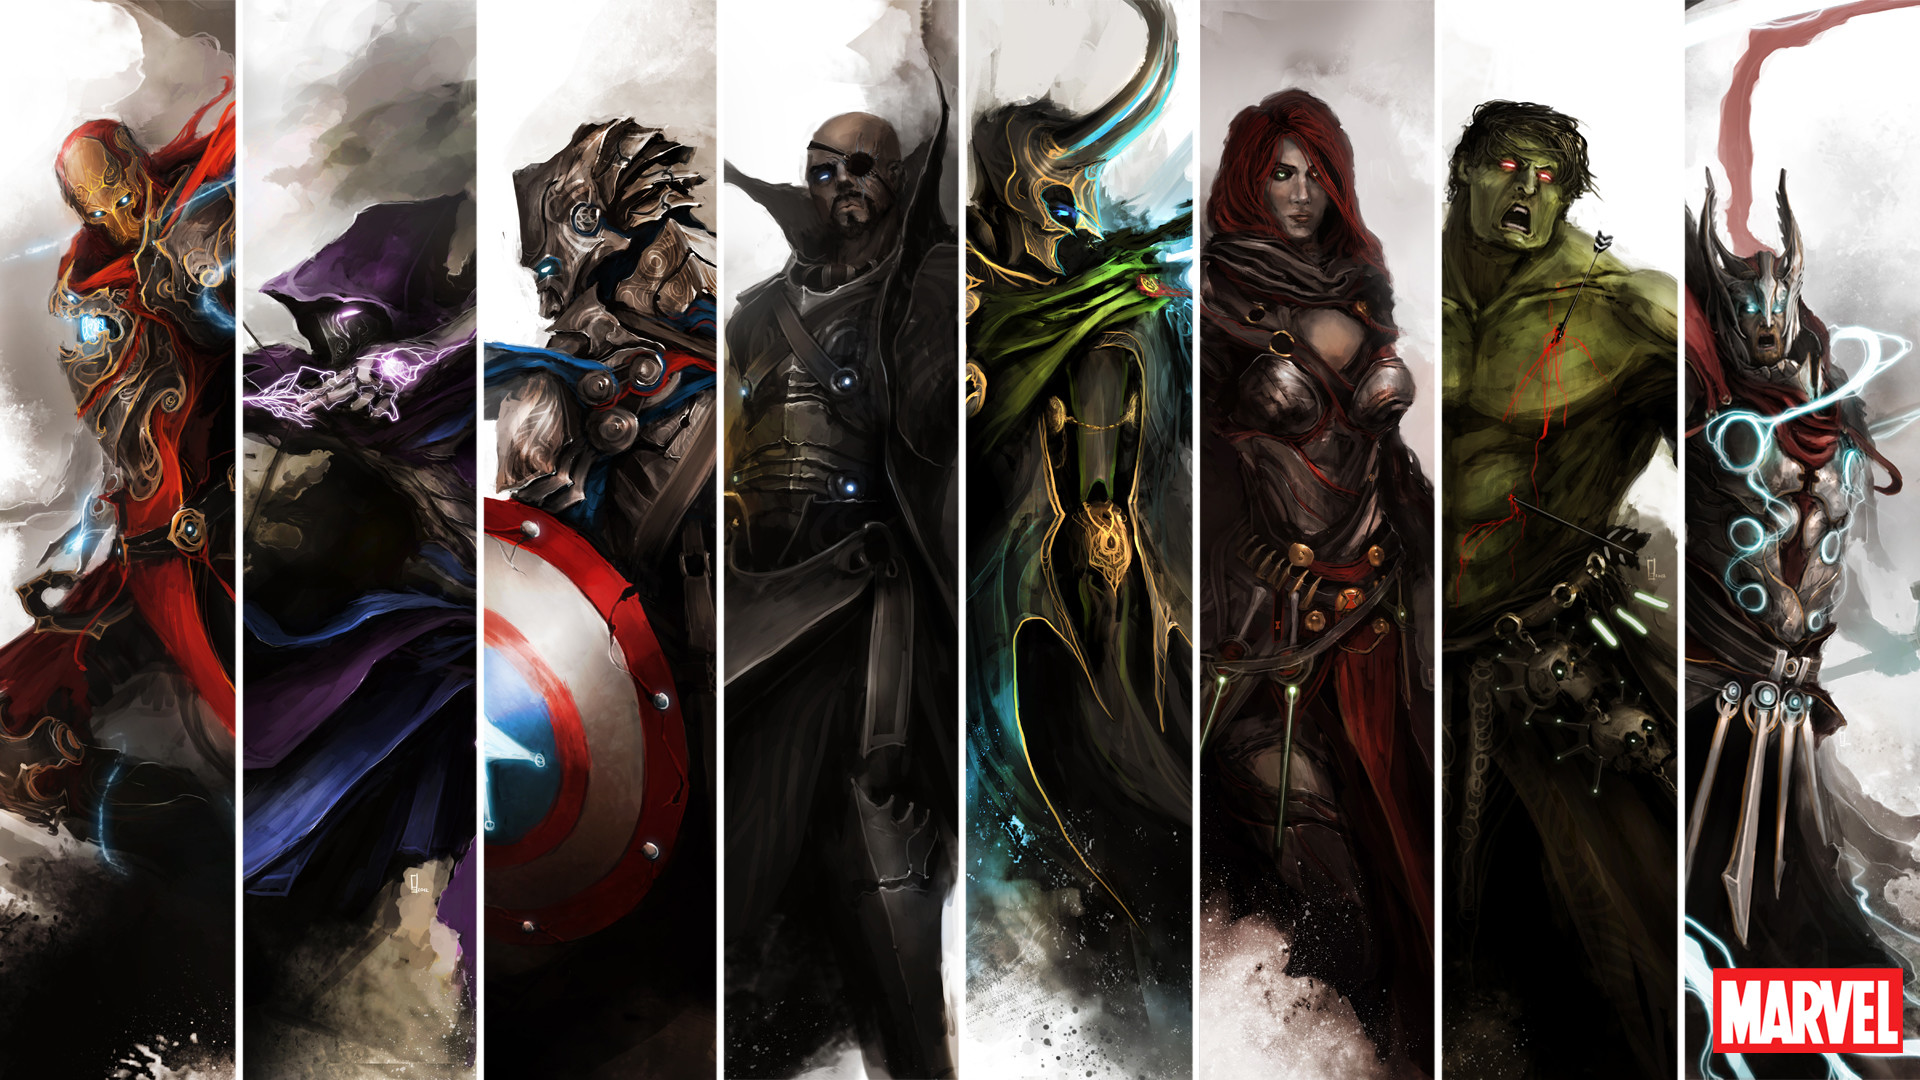 the_avengers_by_thedurrrrian-d55trk8.jpg